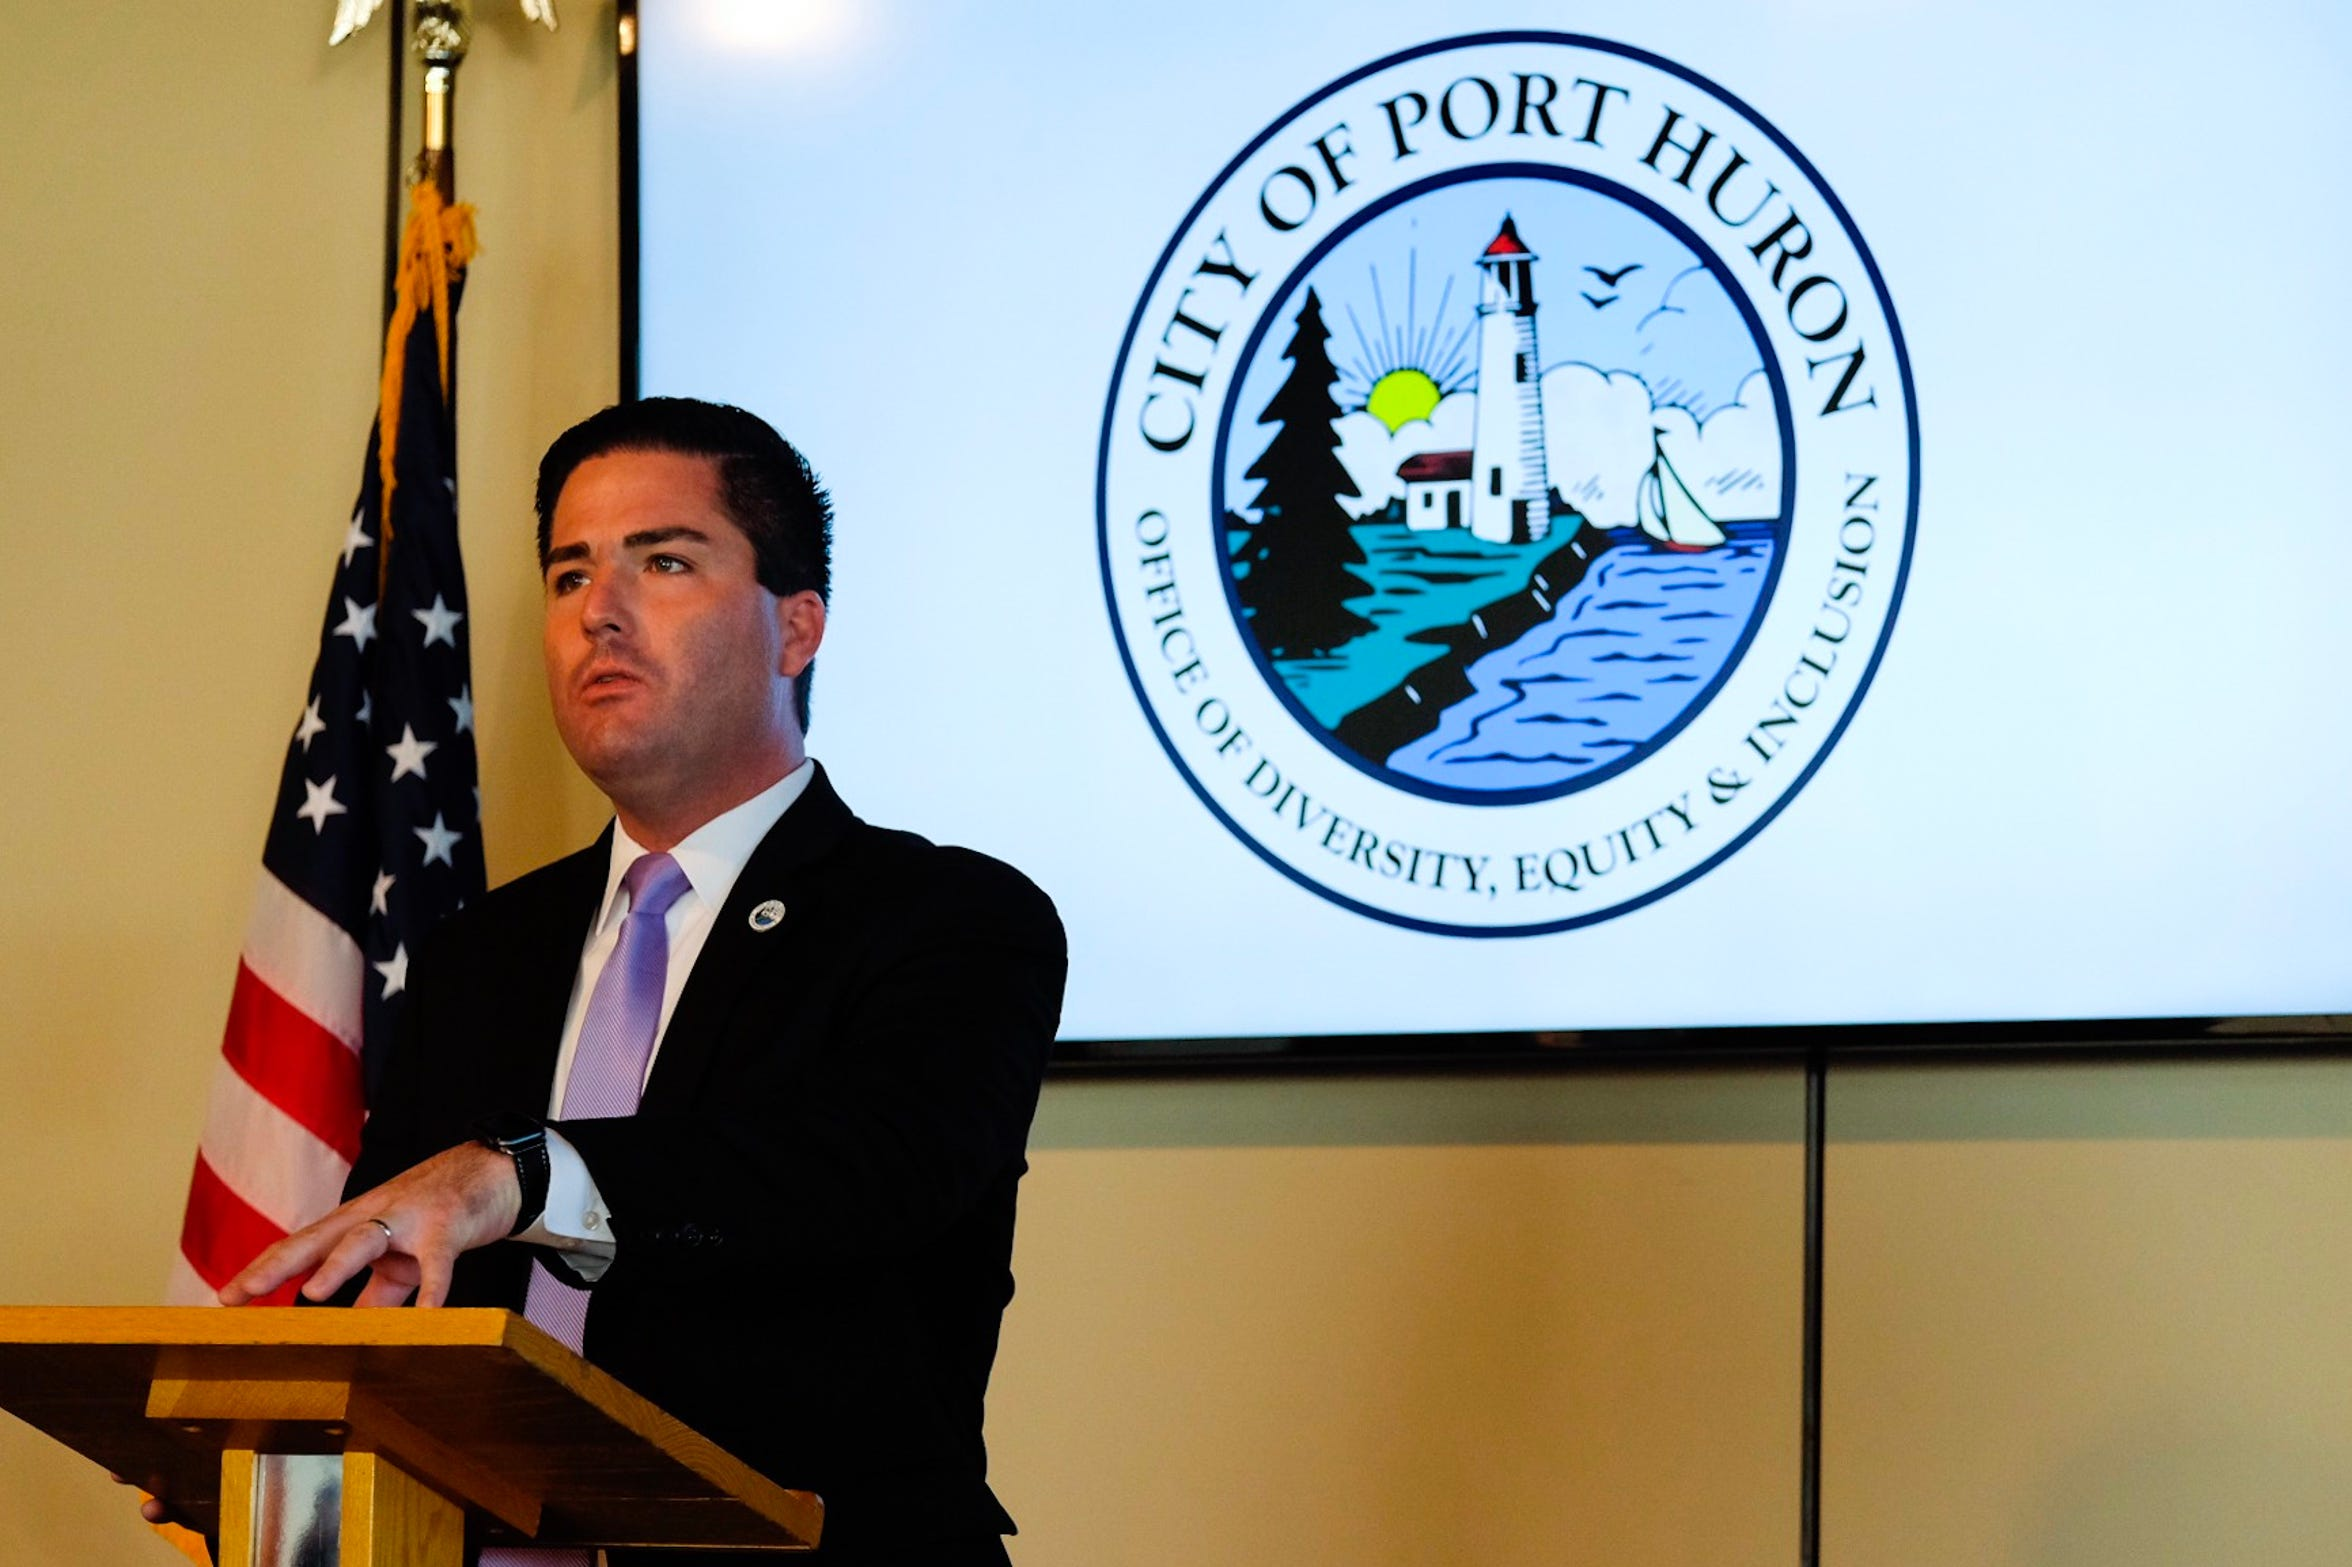 Port Huron City Manager James Freed speaks during a press conference Wednesday morning.